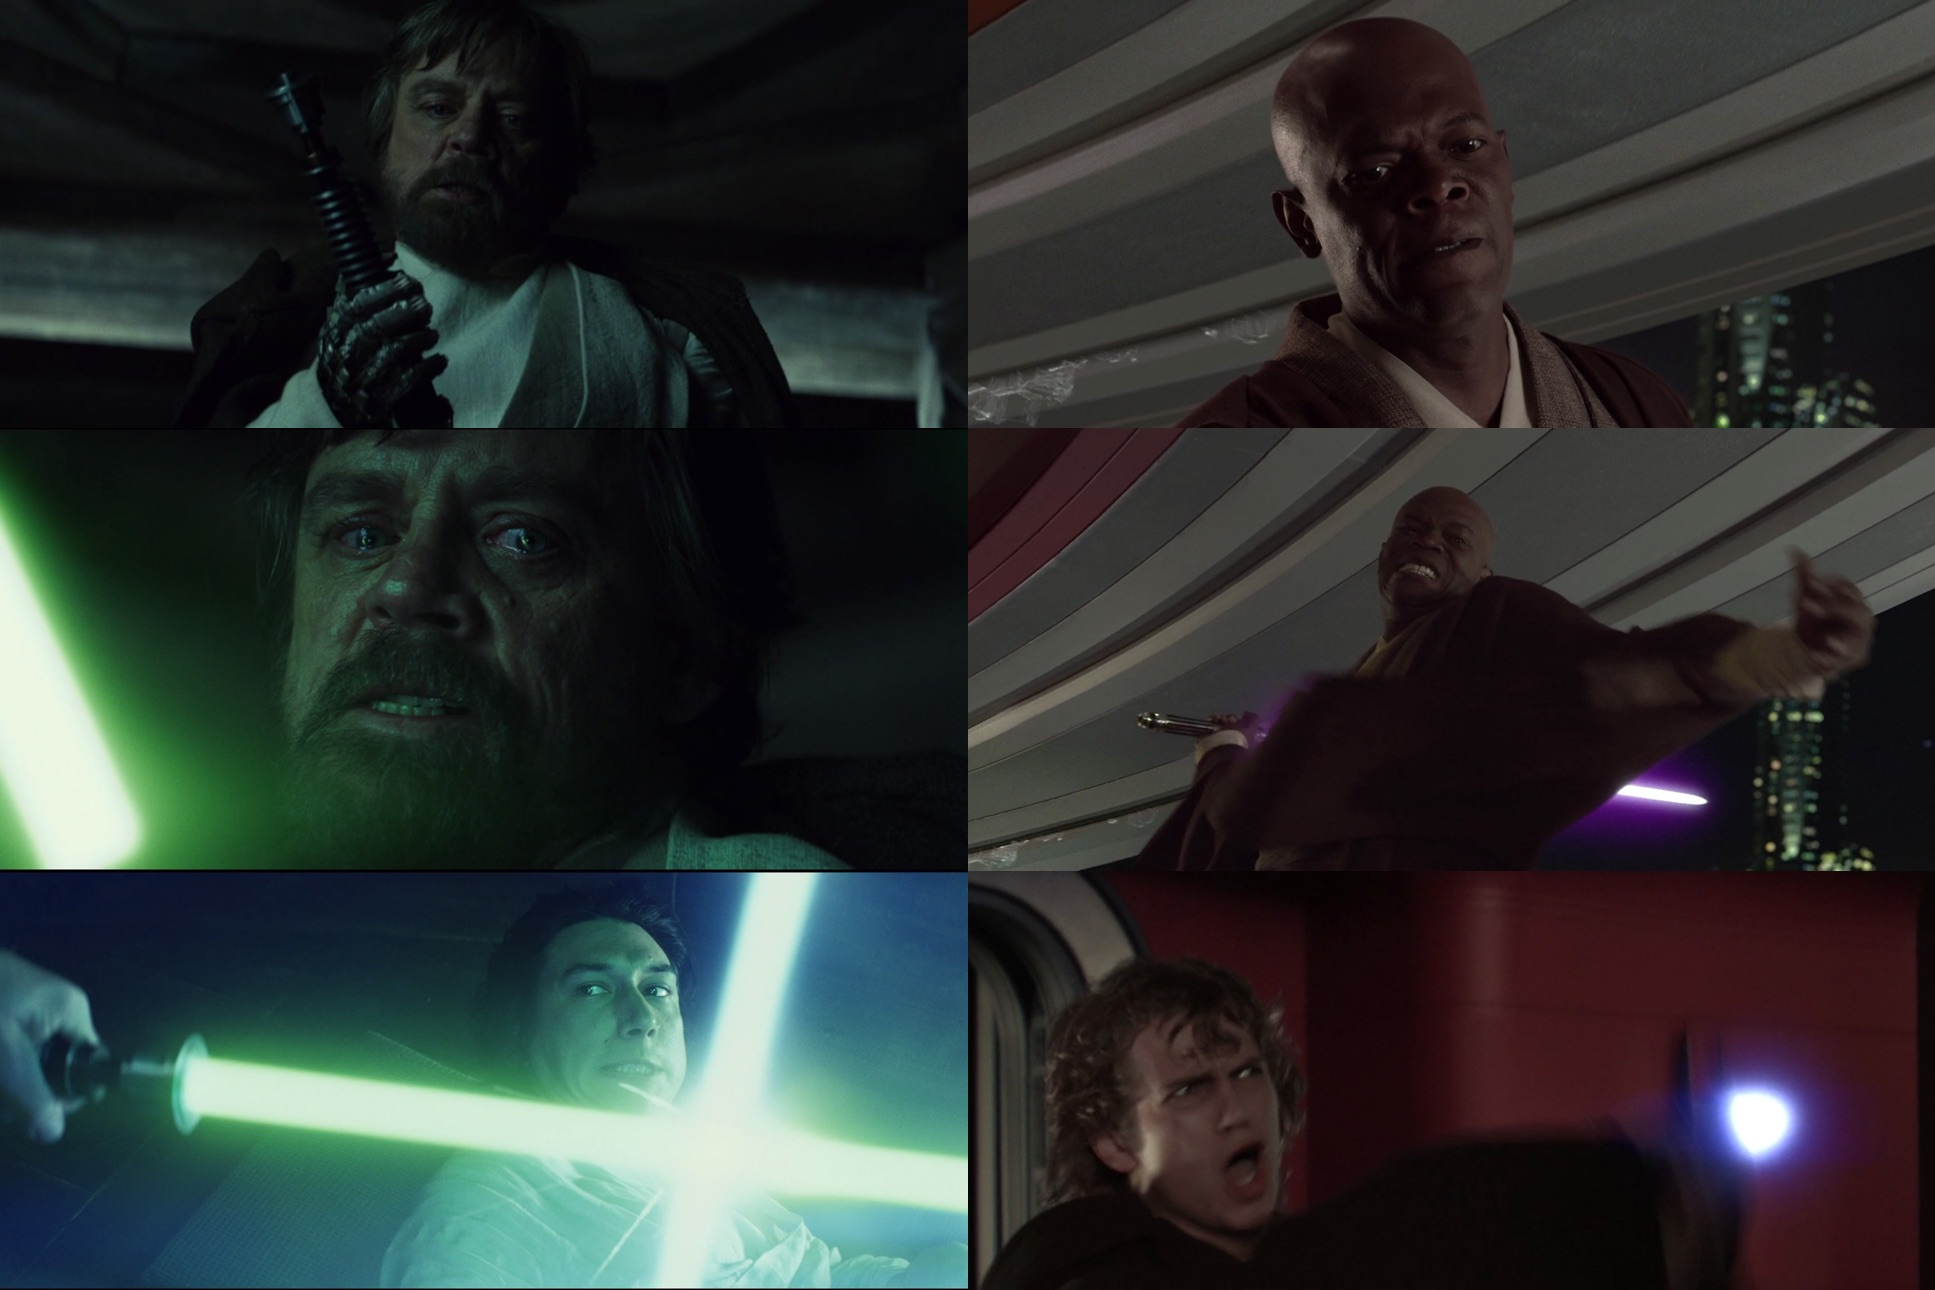 Luke's failure in TLJ clearly parallels his moment of weakness in ROTJ, but it also echoes Mace's moral failure in ROTS-...